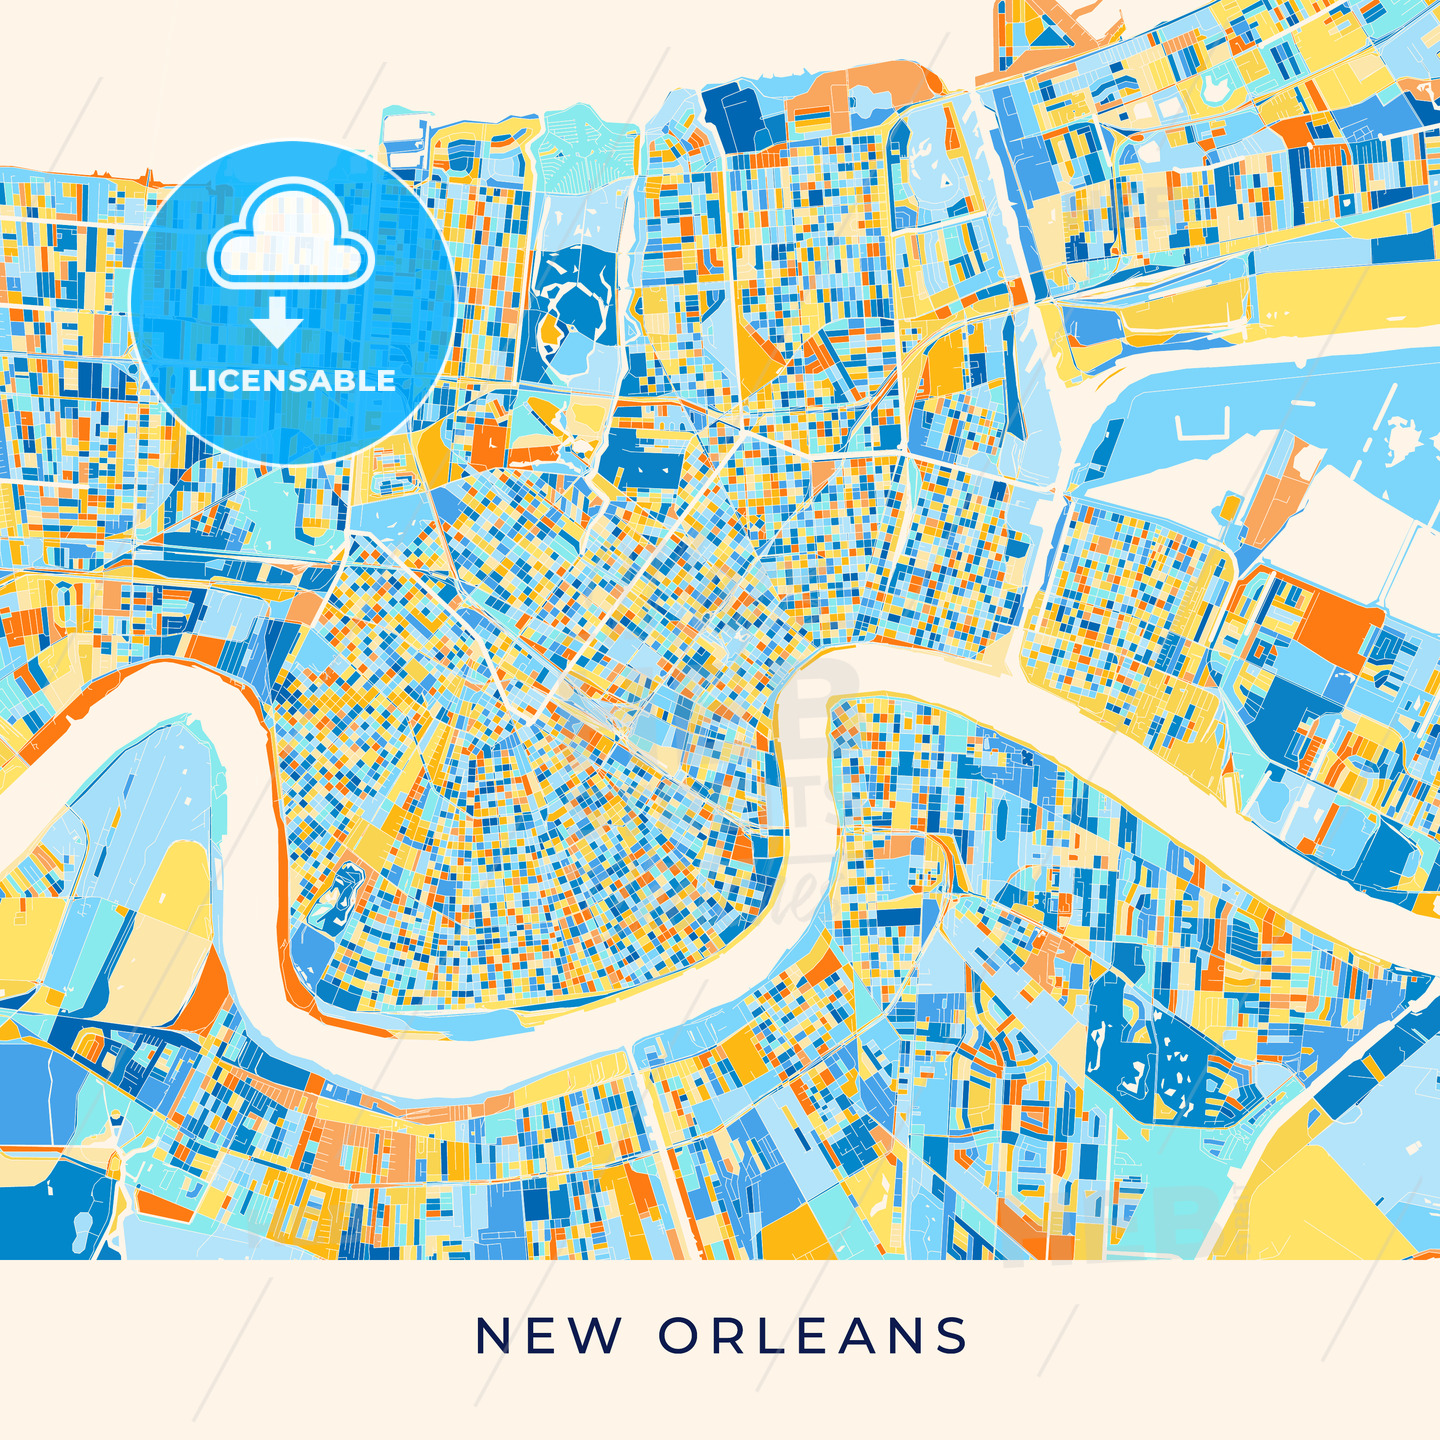 image about Printable Maps of New Orleans titled Fresh new Orleans colourful map poster template